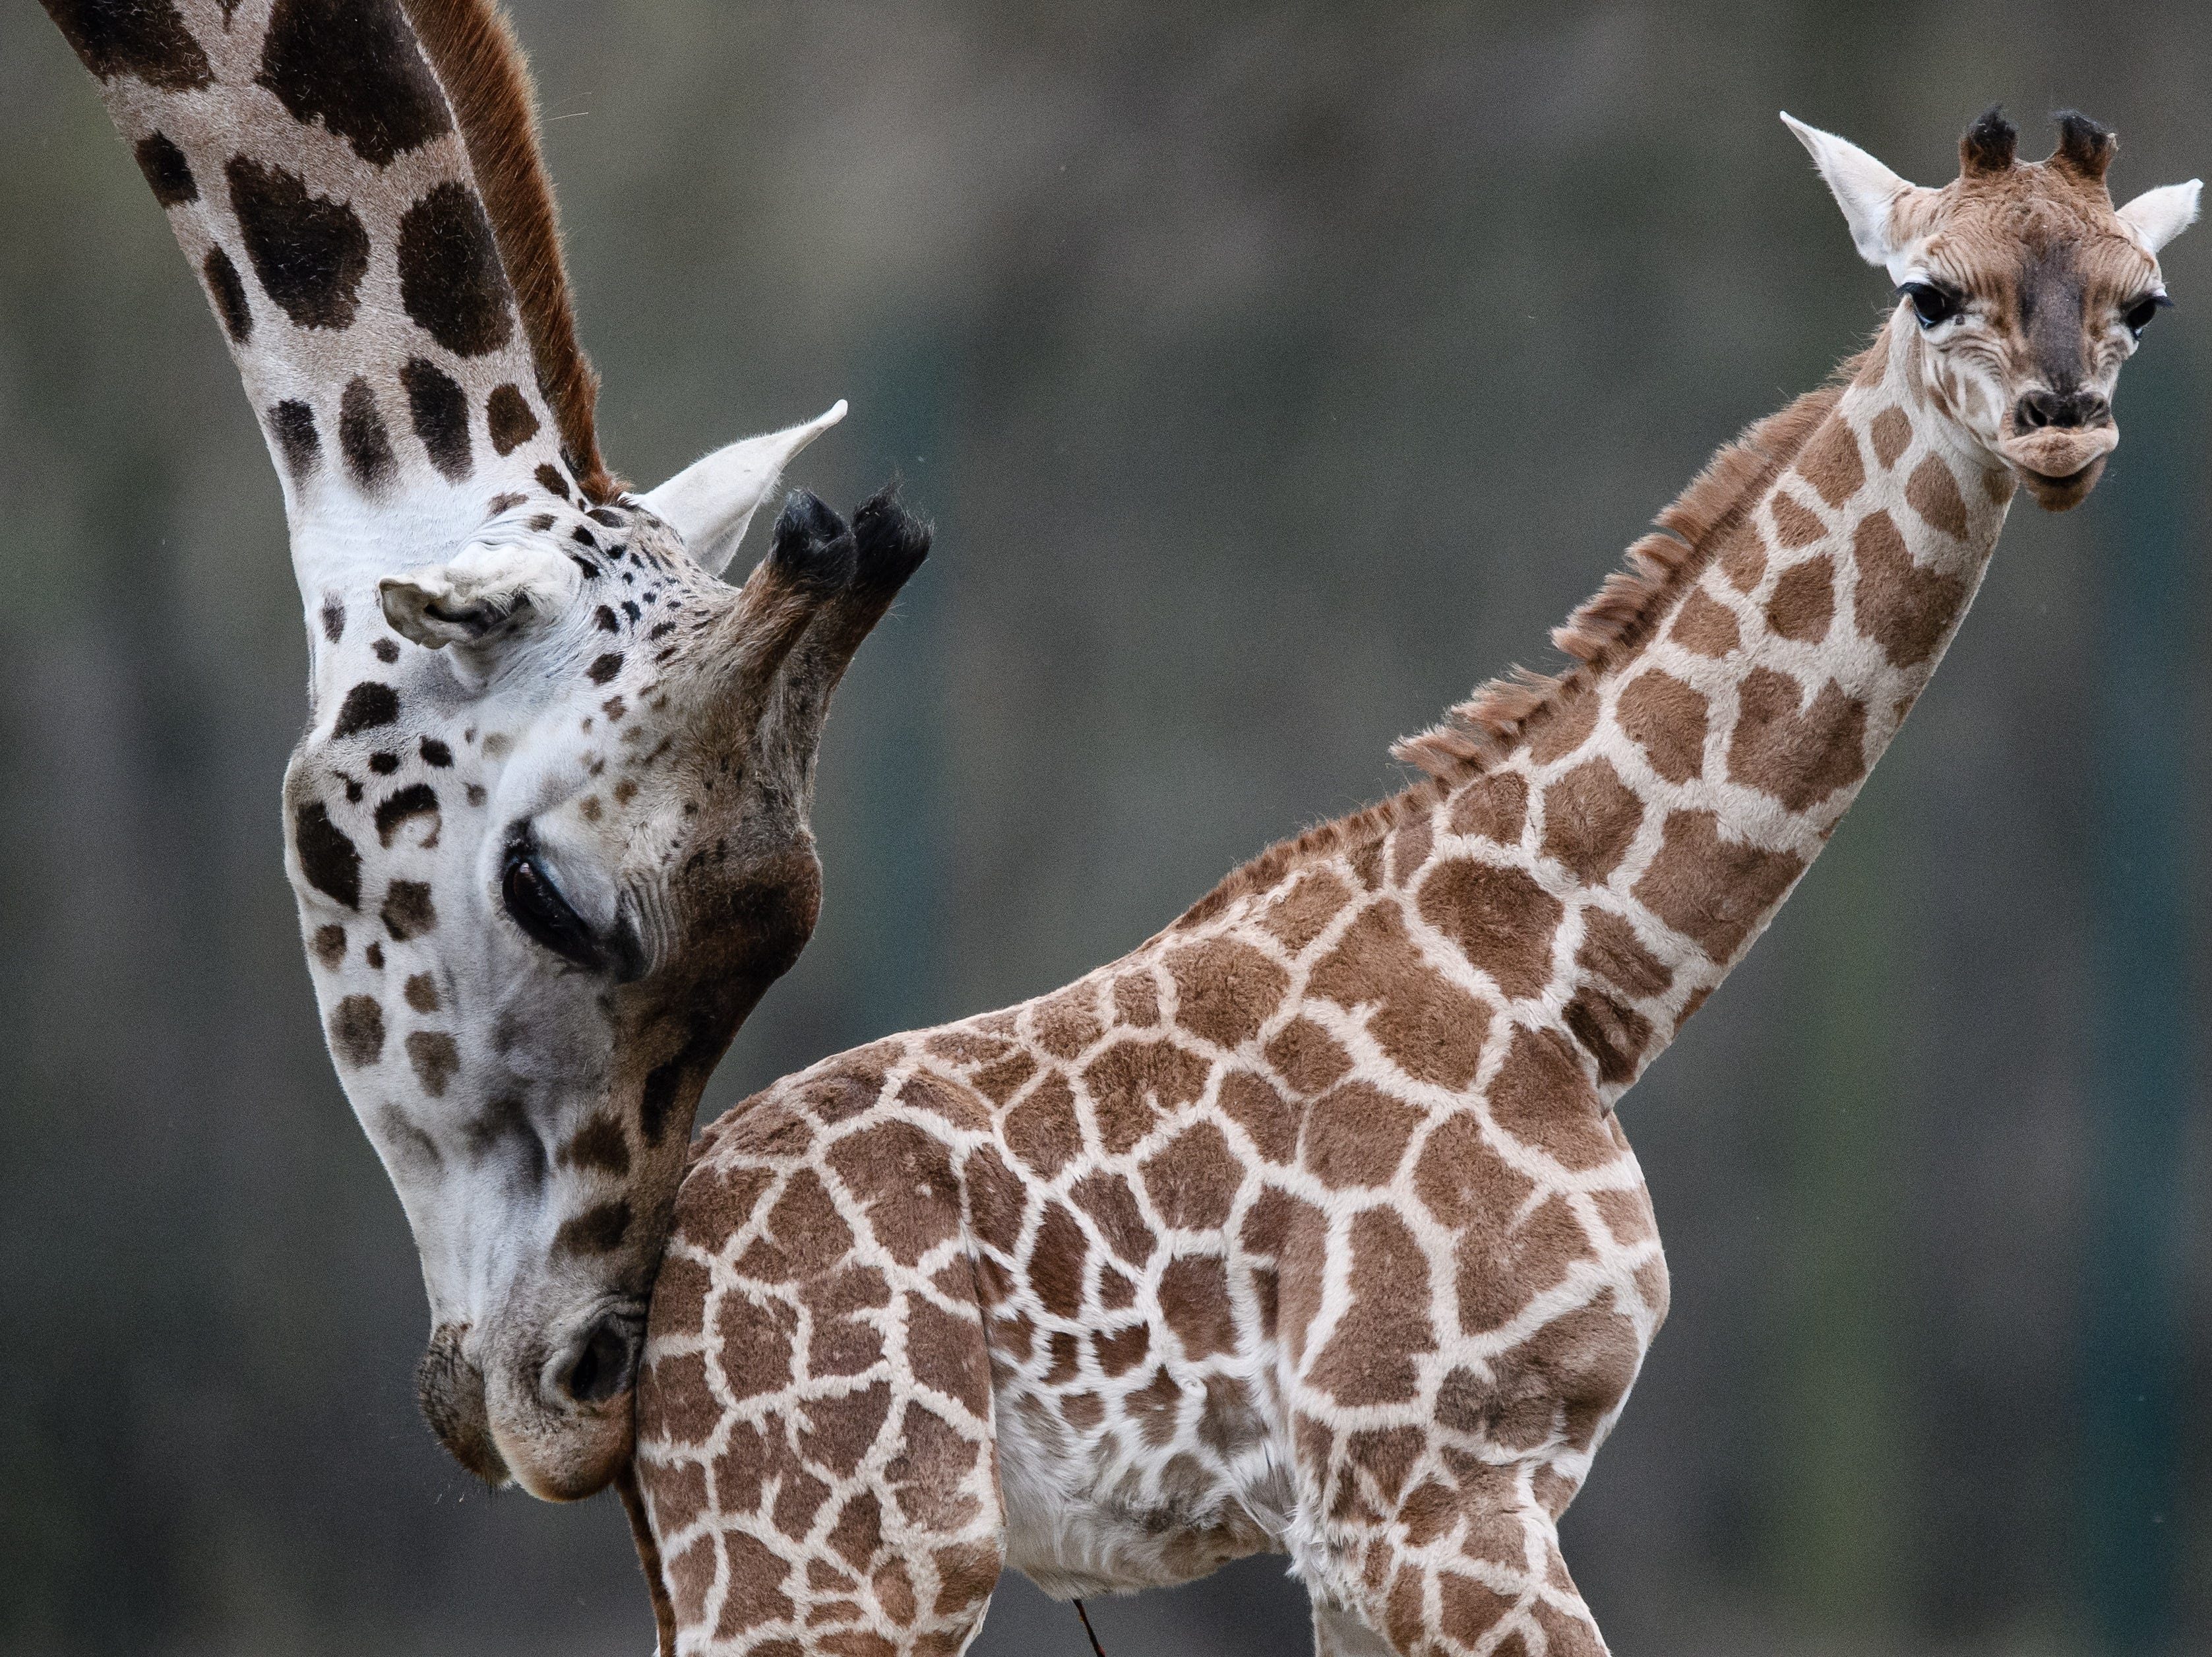 The Giraffe cub Ella (R) stands next to her mother Amalka as she walks for the first time in the outdoor enclosure of the Tierpark in Berlin, Germany on Nov. 20, 2018. Ella is a a Rothschild's giraffe and was born on Nov. 3, 2018 in Berlin.